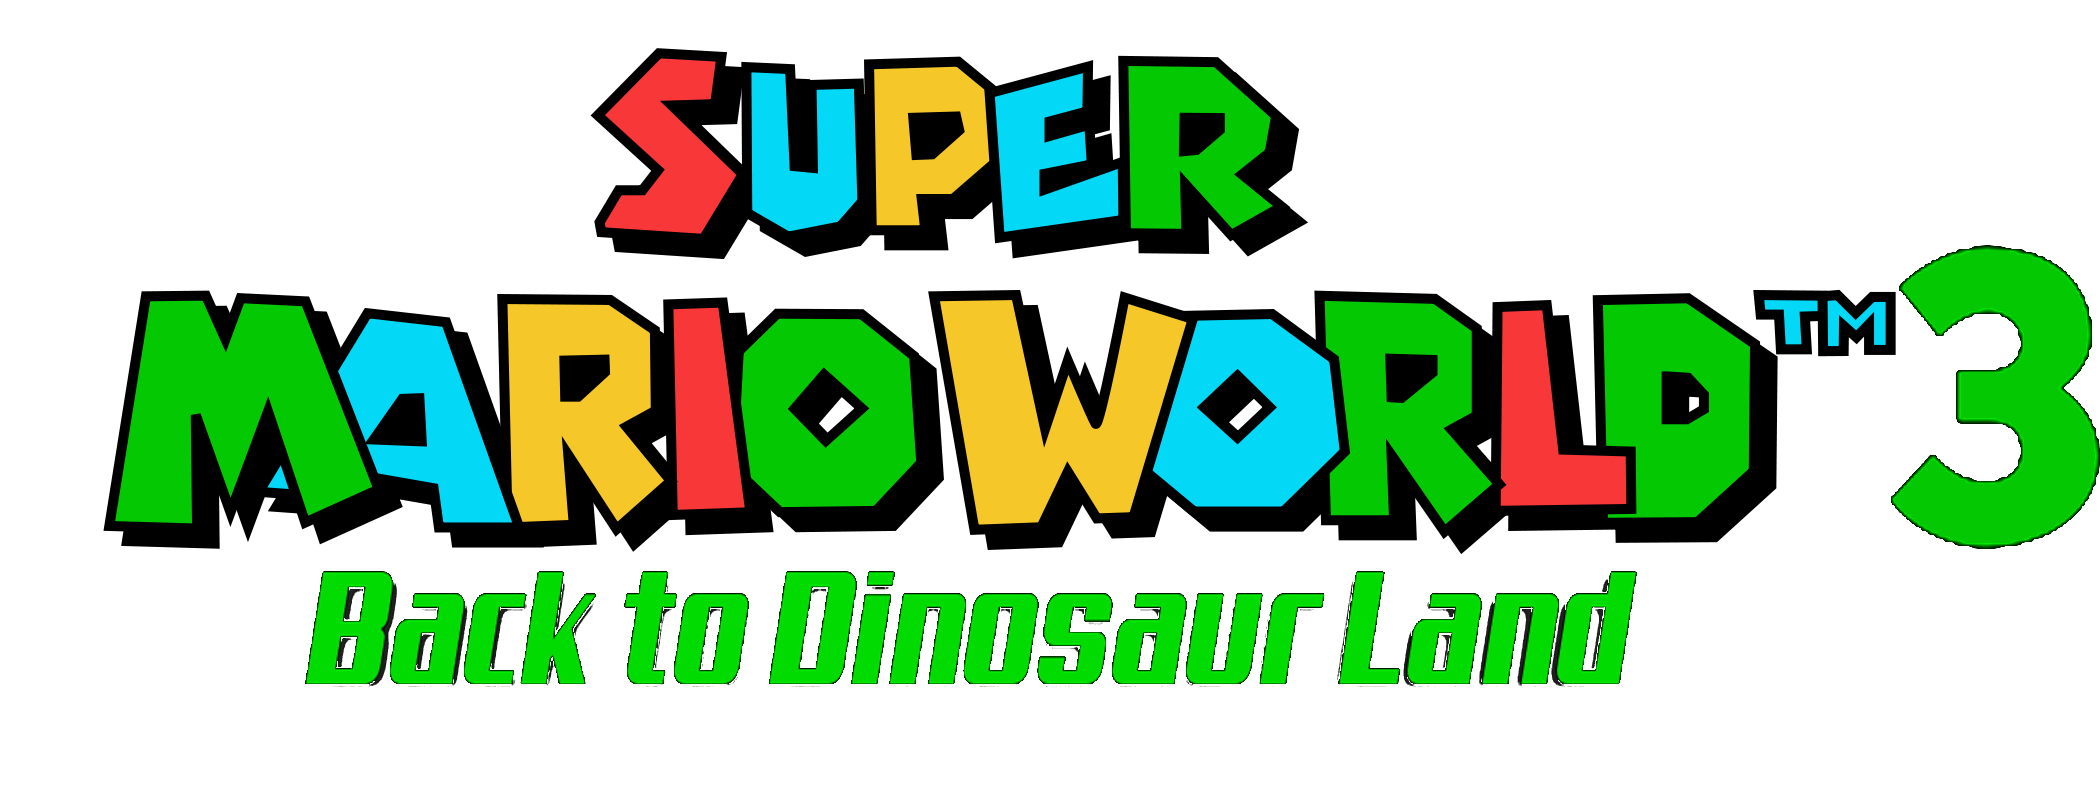 Super Mario World 3: Back to Dinosaur Land